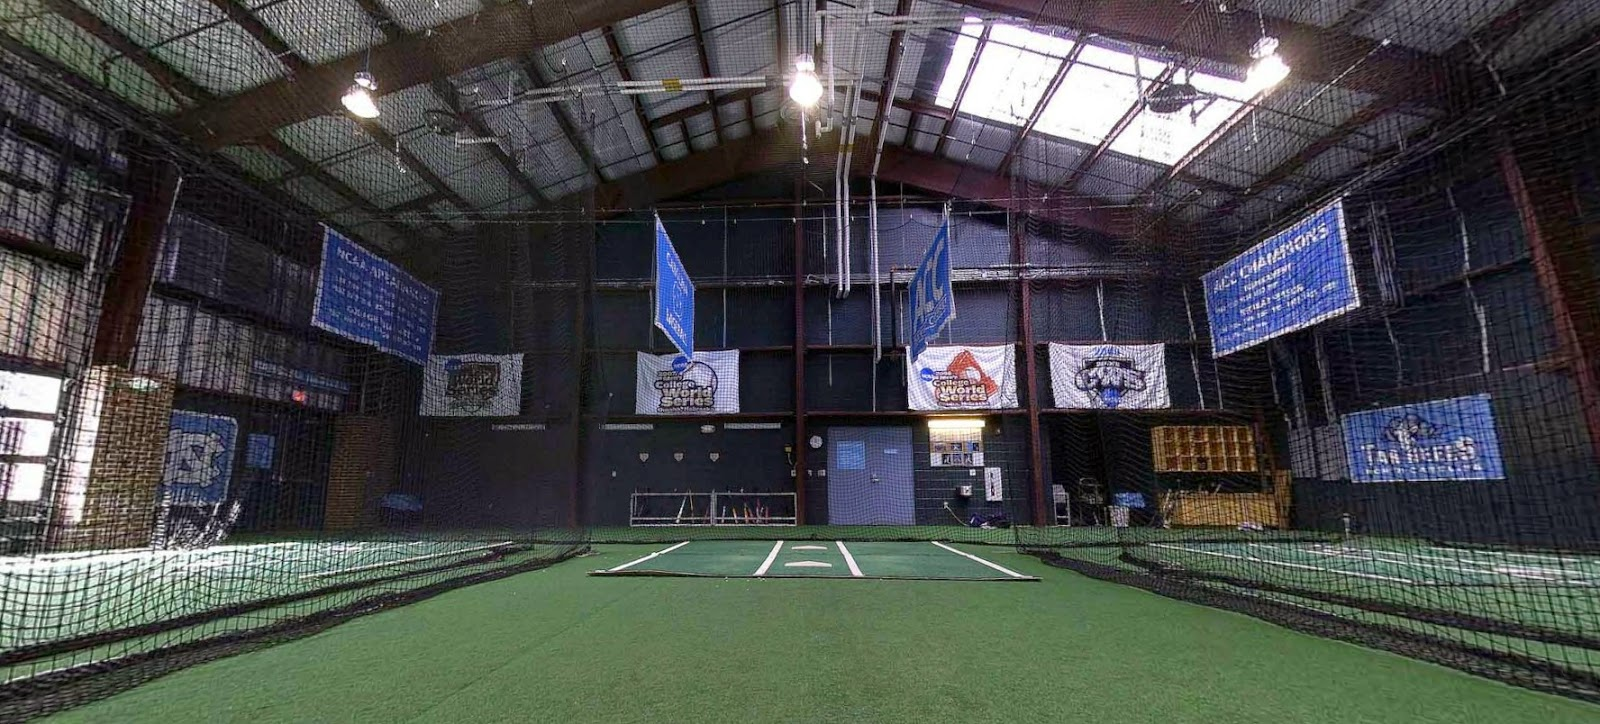 Indoor baseball batting cages trending for Design indoor baseball facility